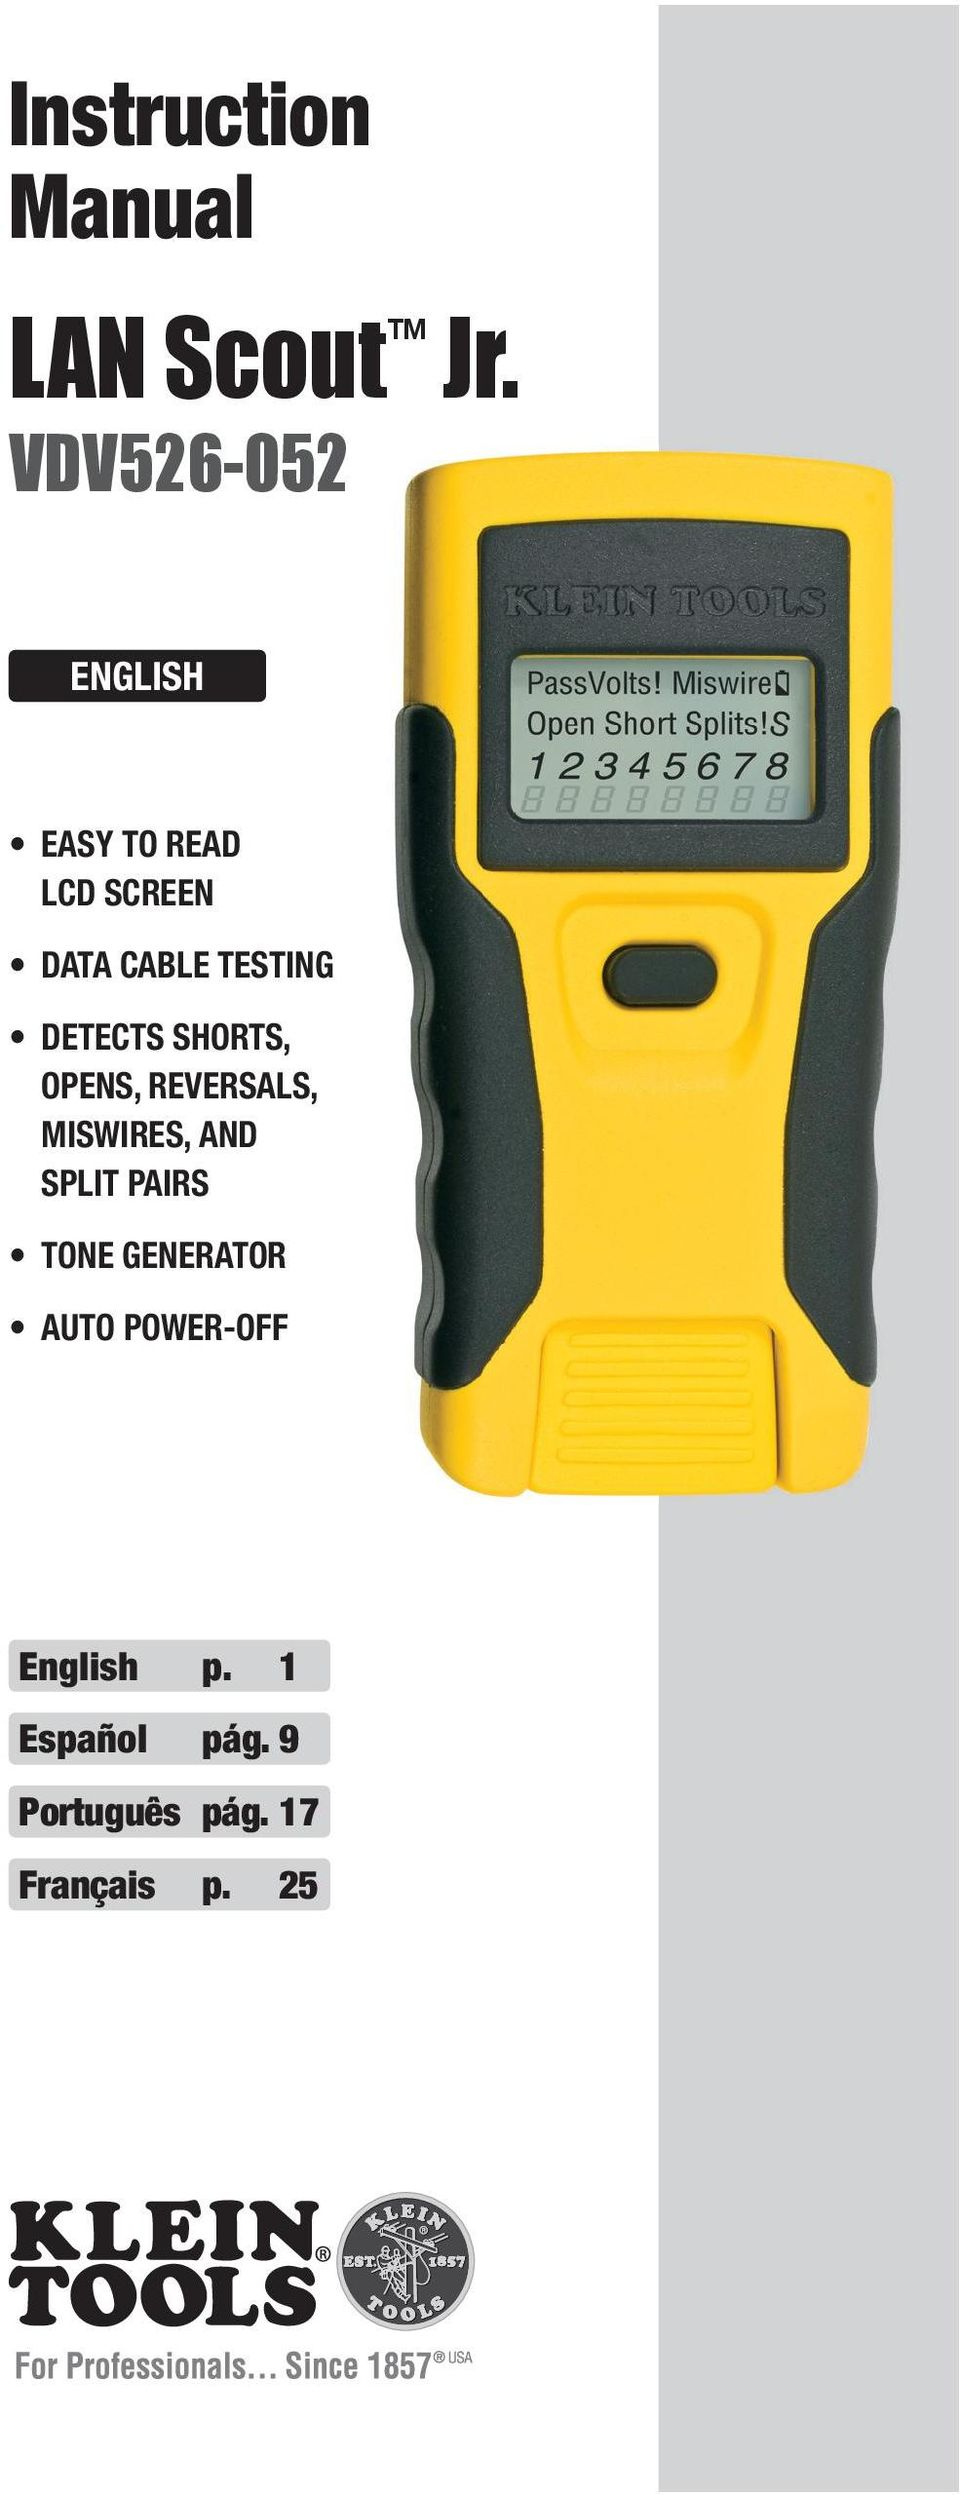 DEtEctS SHortS, opens, reversals, MISWIrES, and SpLIt pairs